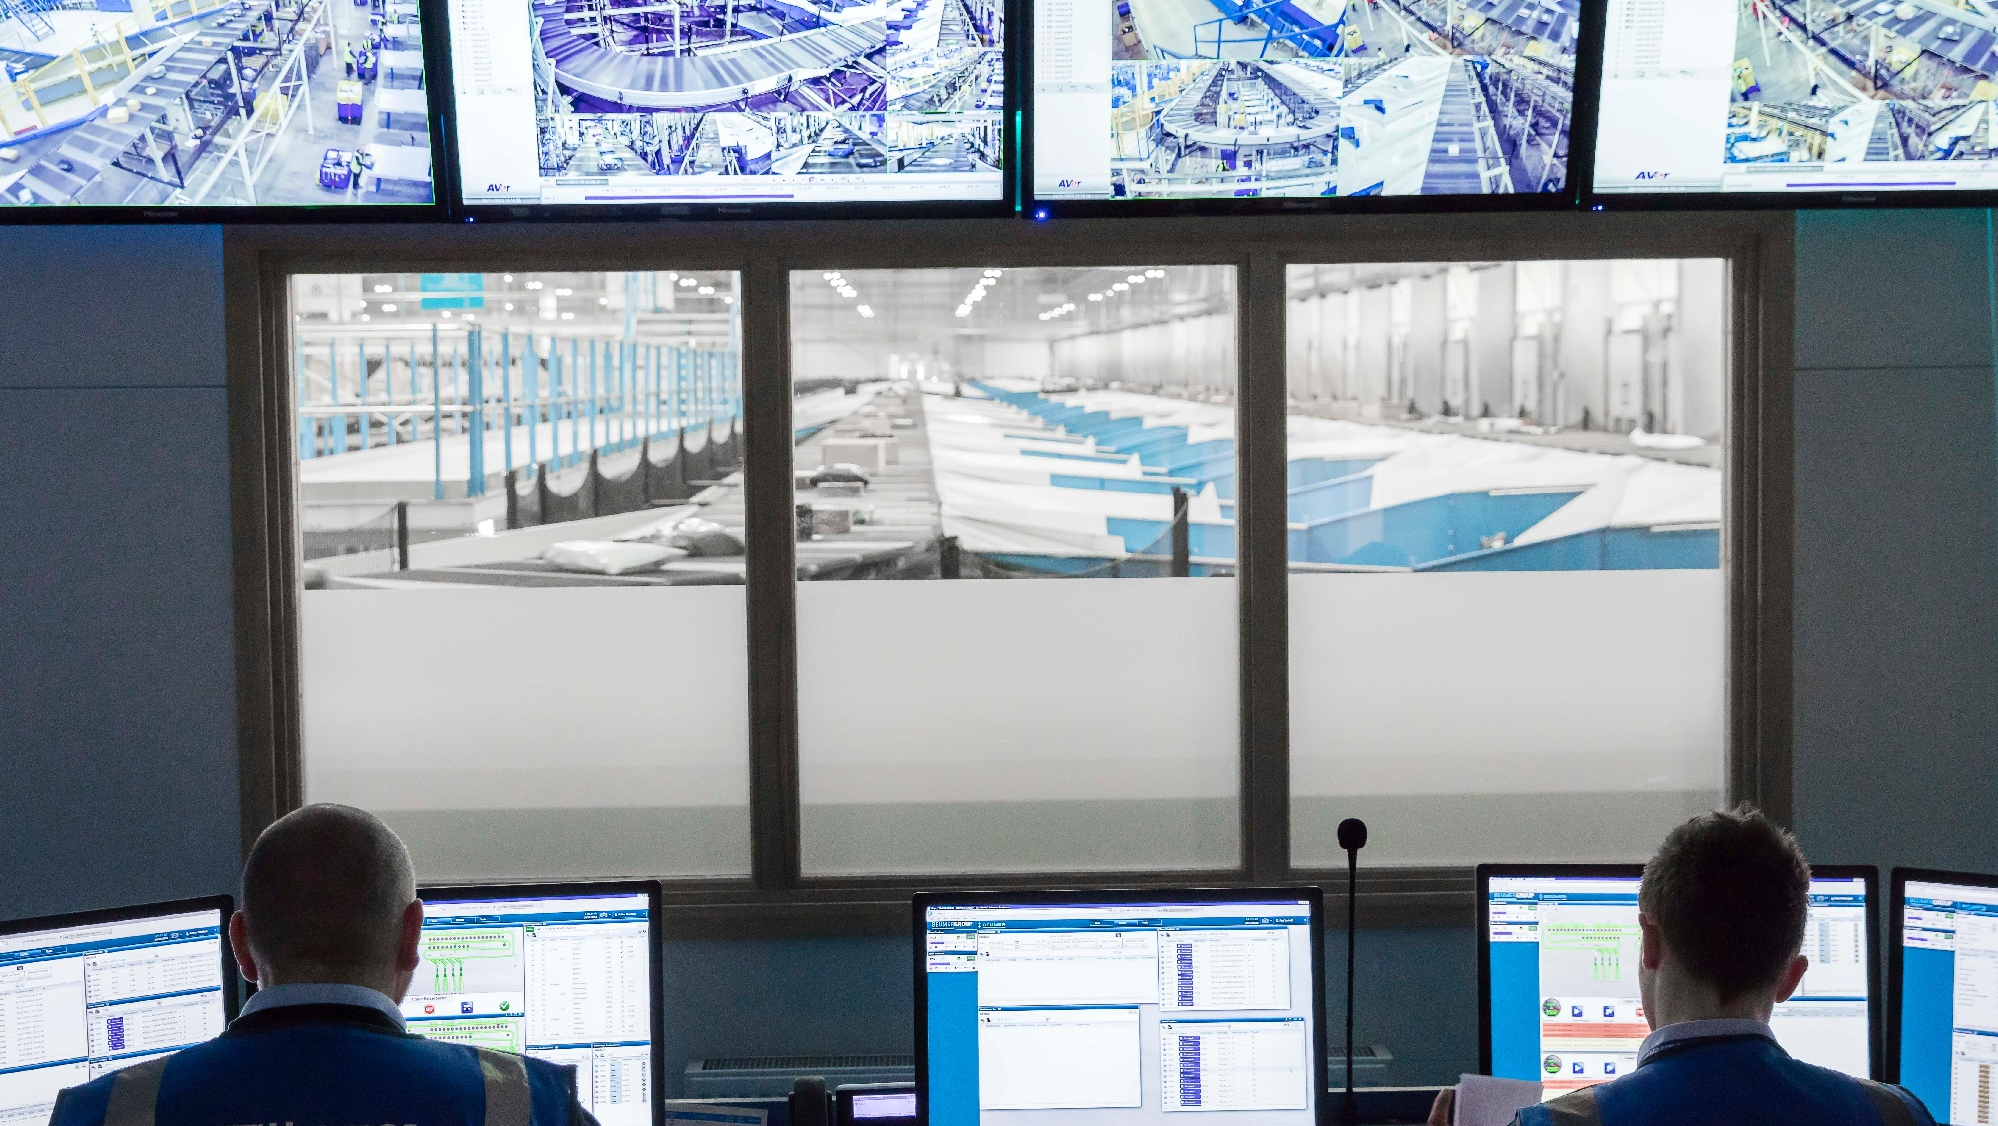 Distribution centre managers use digitalisation to monitor sortation system